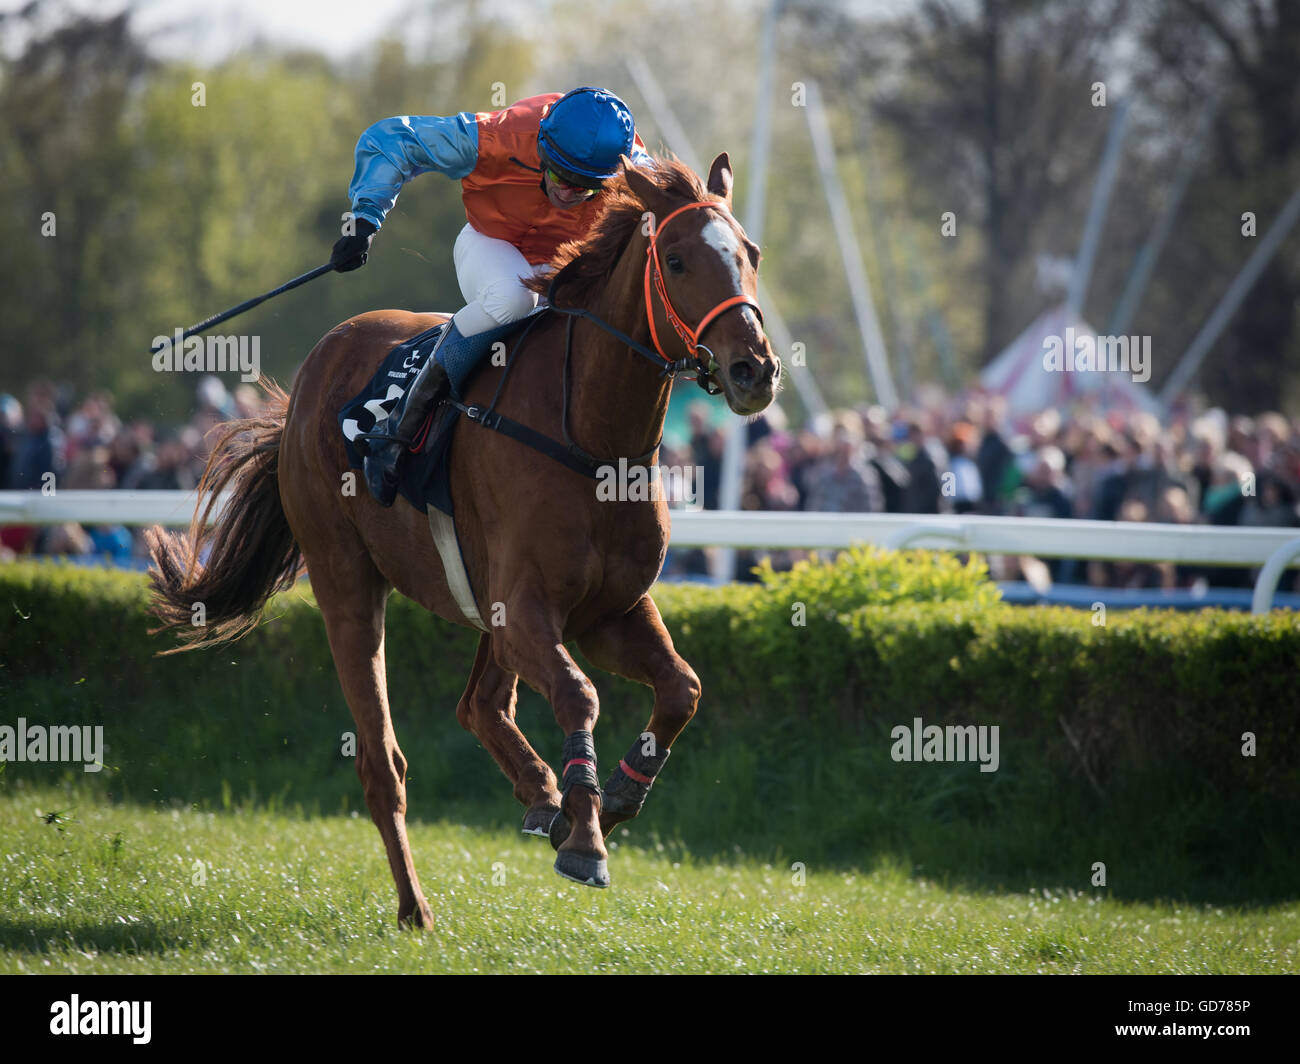 WROCLAW, POLAND - APRIL 24; 2016: International steeplechase for 4-year old horses. In action jockey M. Novak on Stock Photo